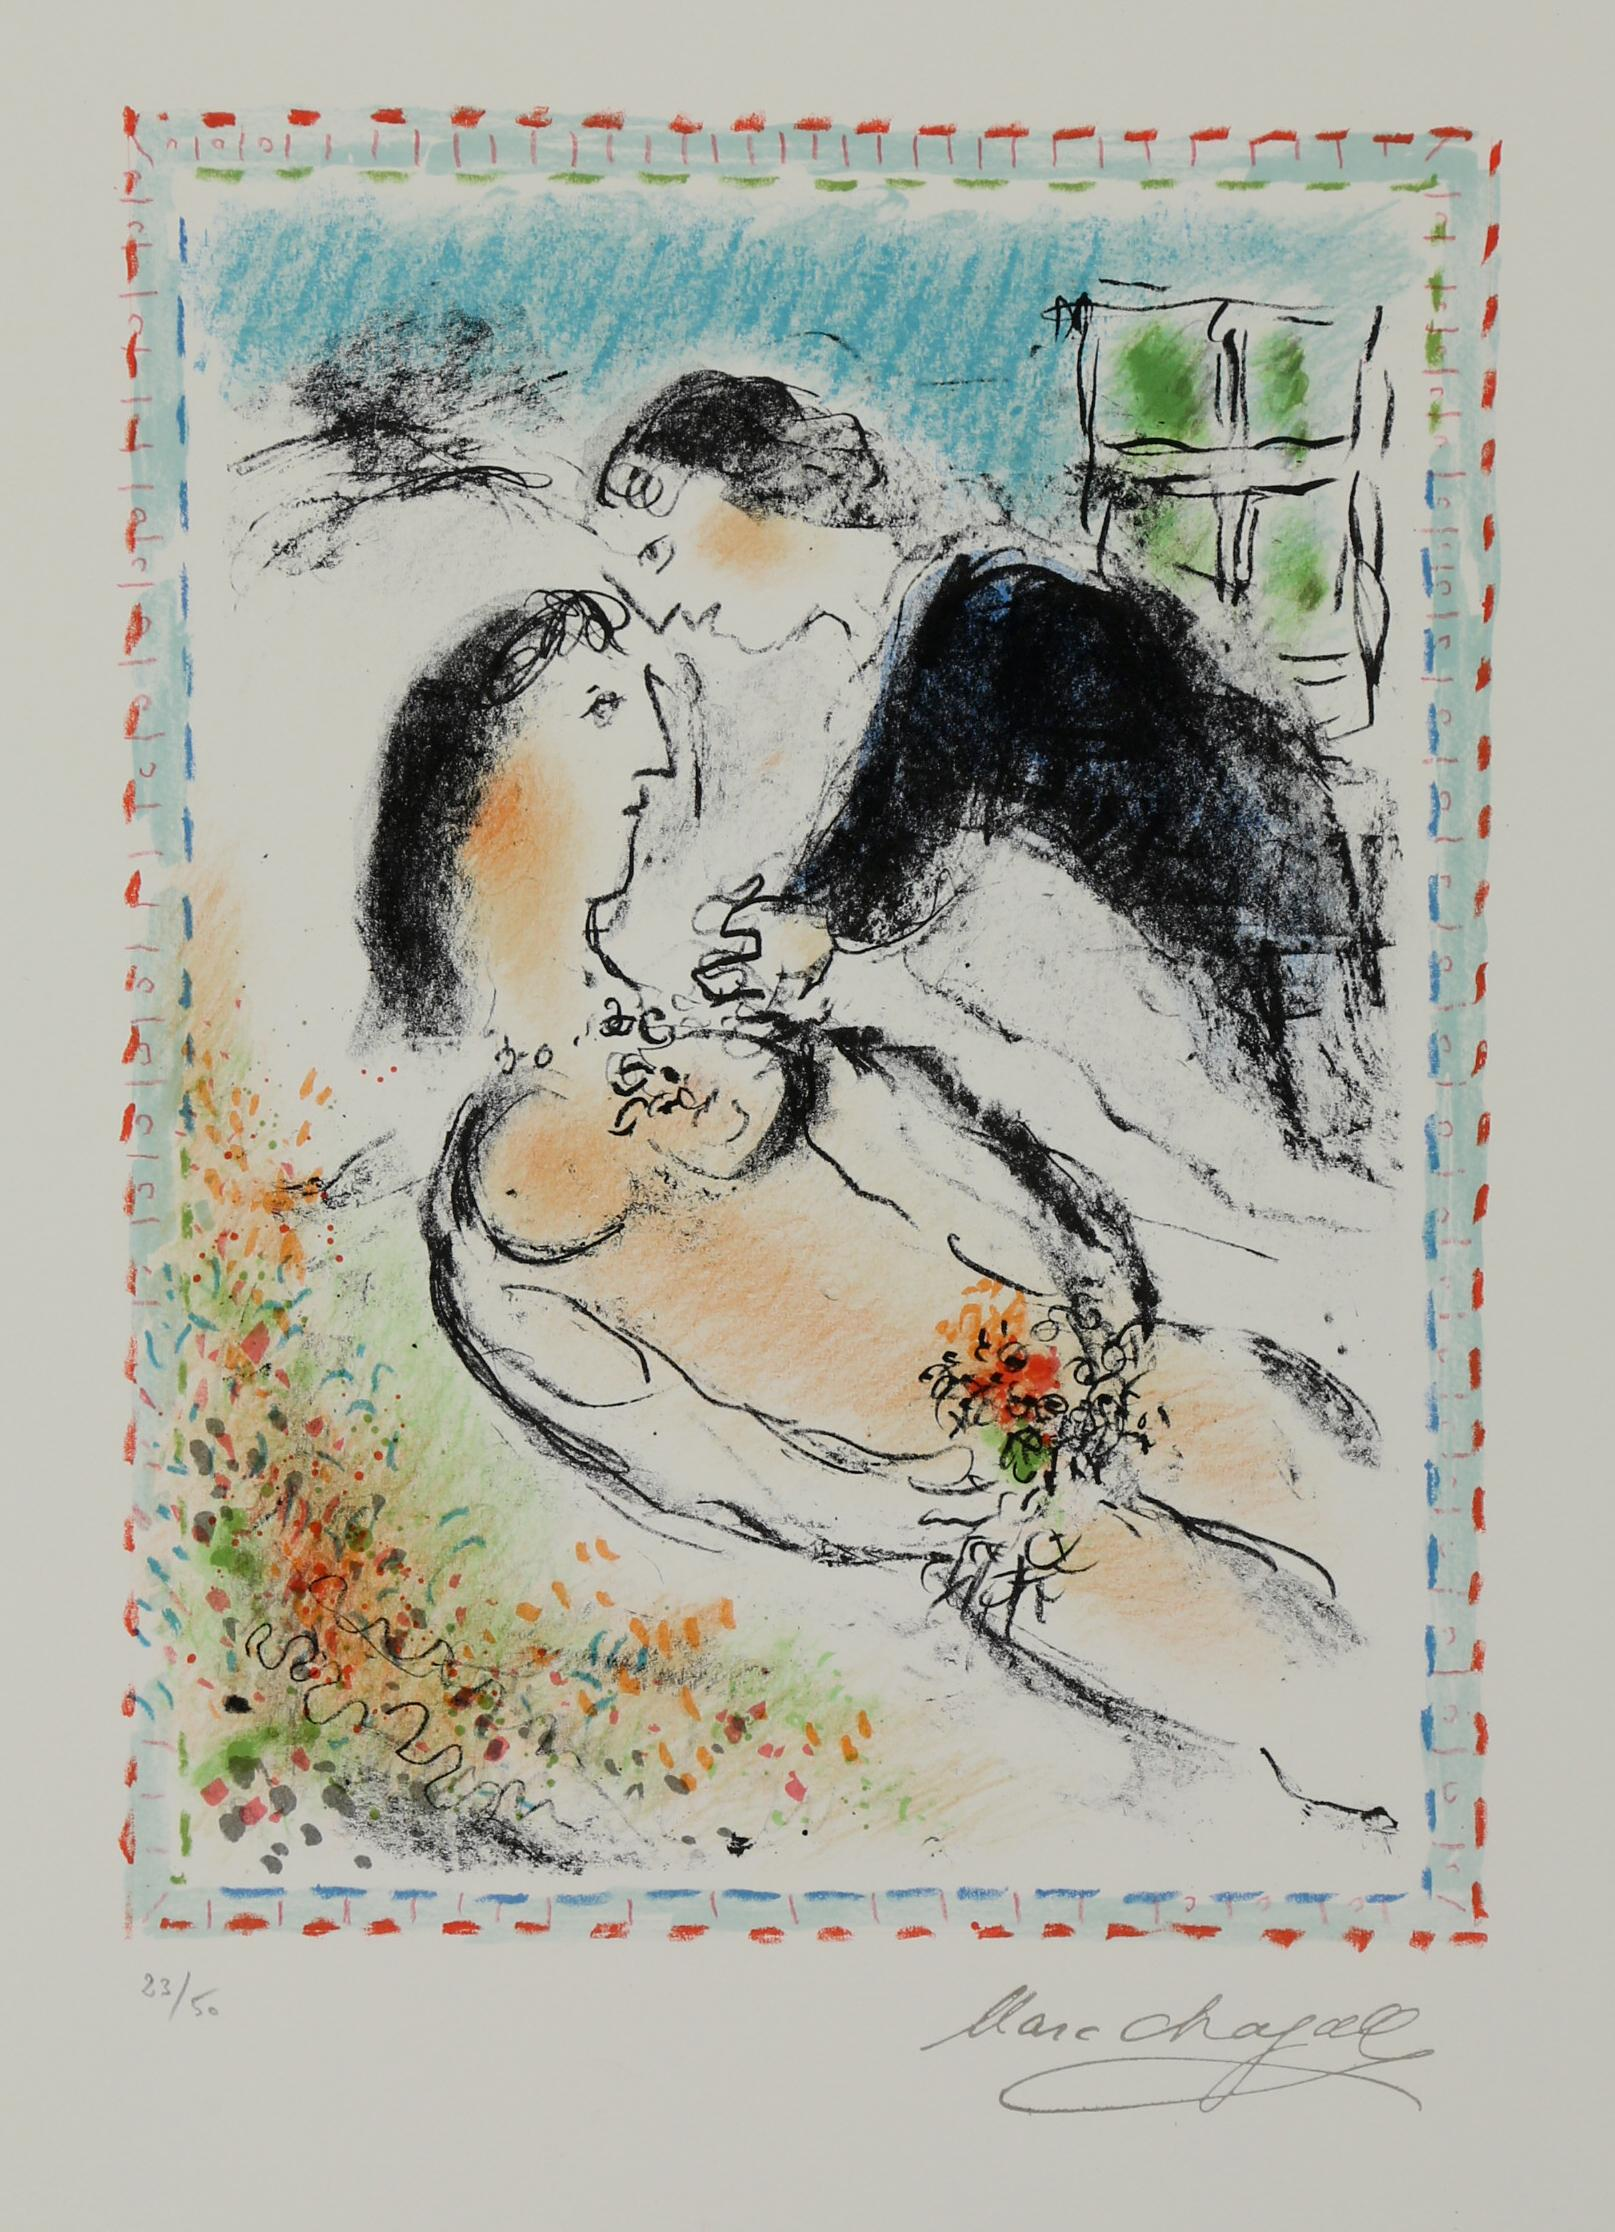 Le Repos, Limited edition lithograph